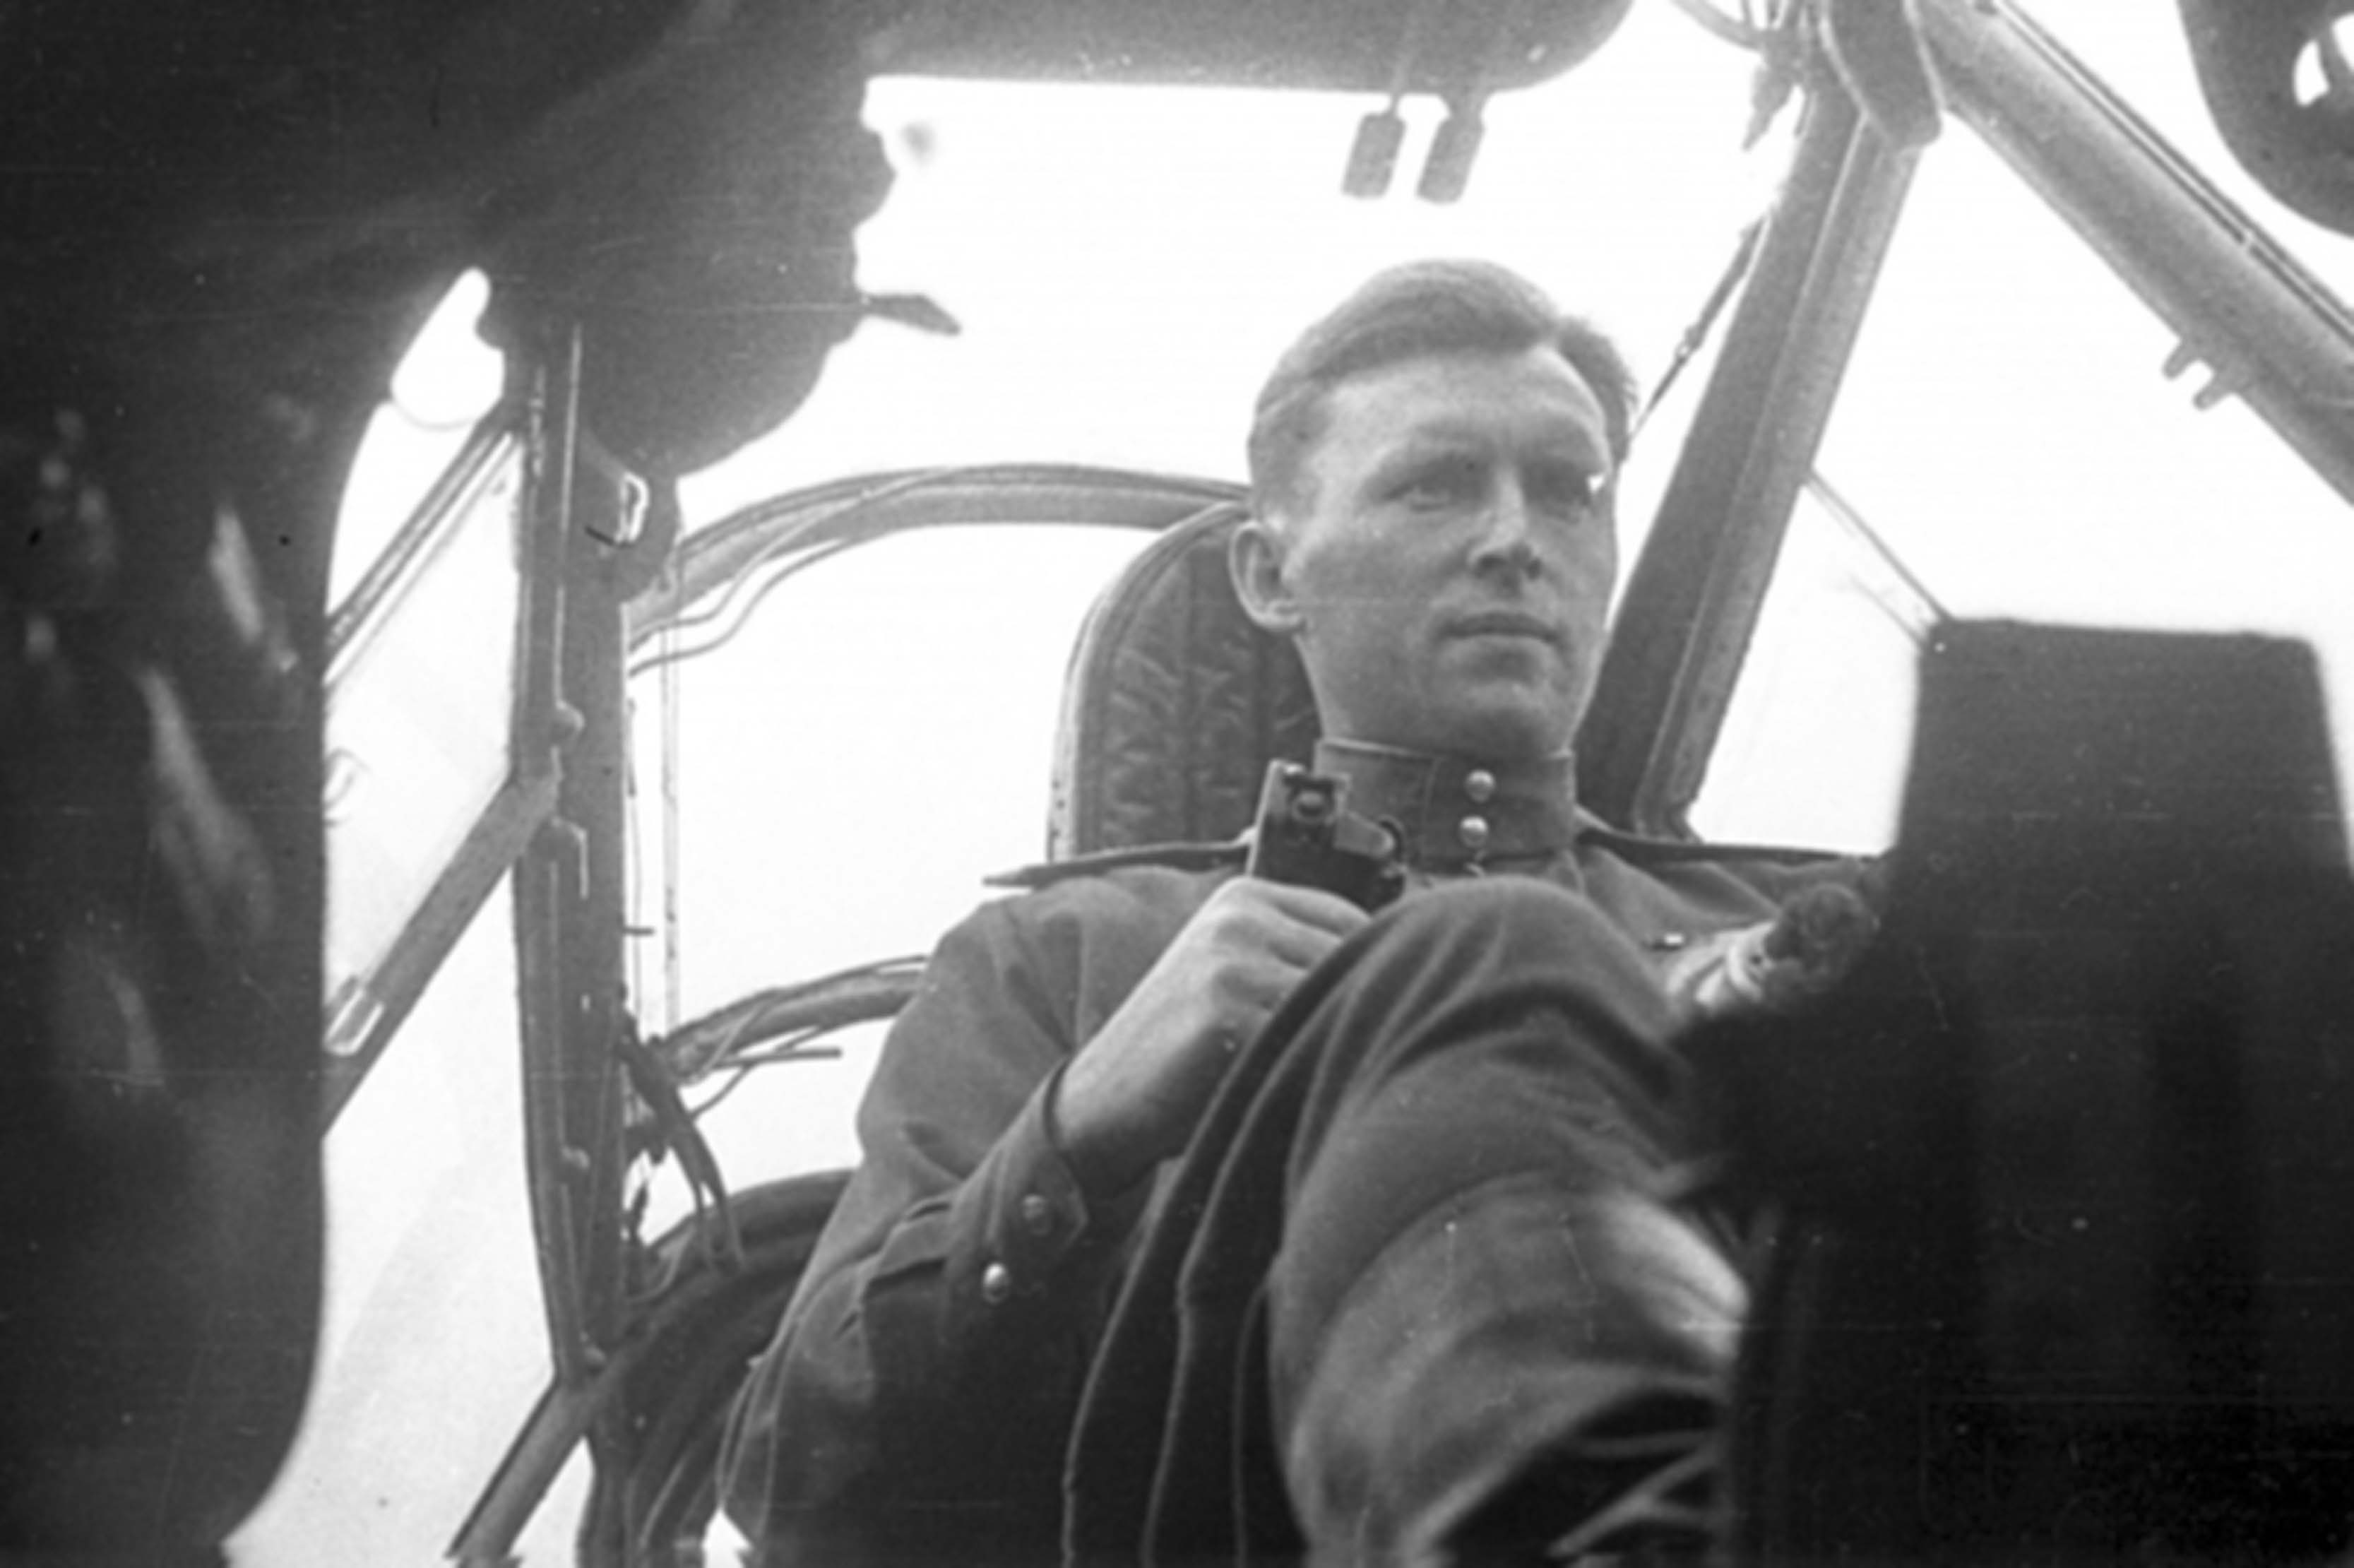 Test pilot Alexei Perelet